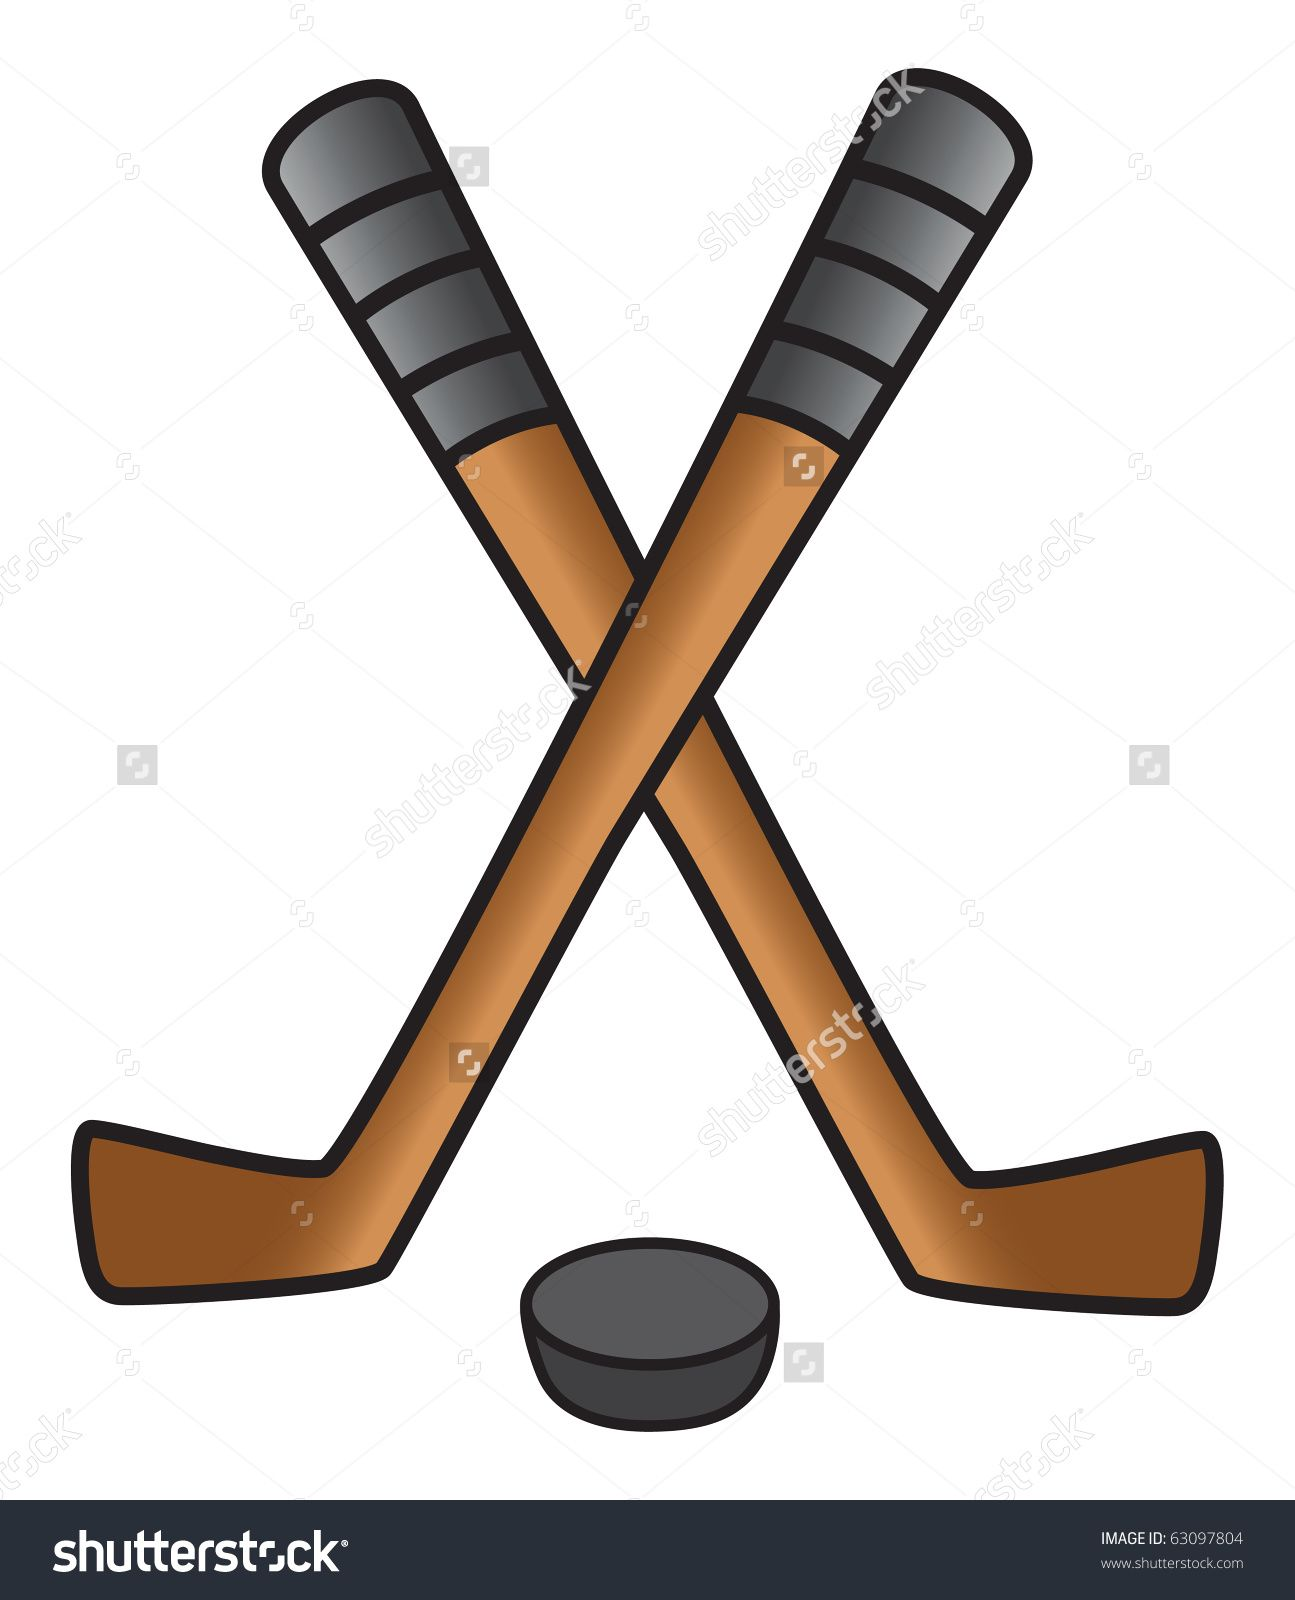 Cartoon Vector Illustration Of Hockey Sticks And Puck Hockey Stick Cartoons Vector Vector Illustration